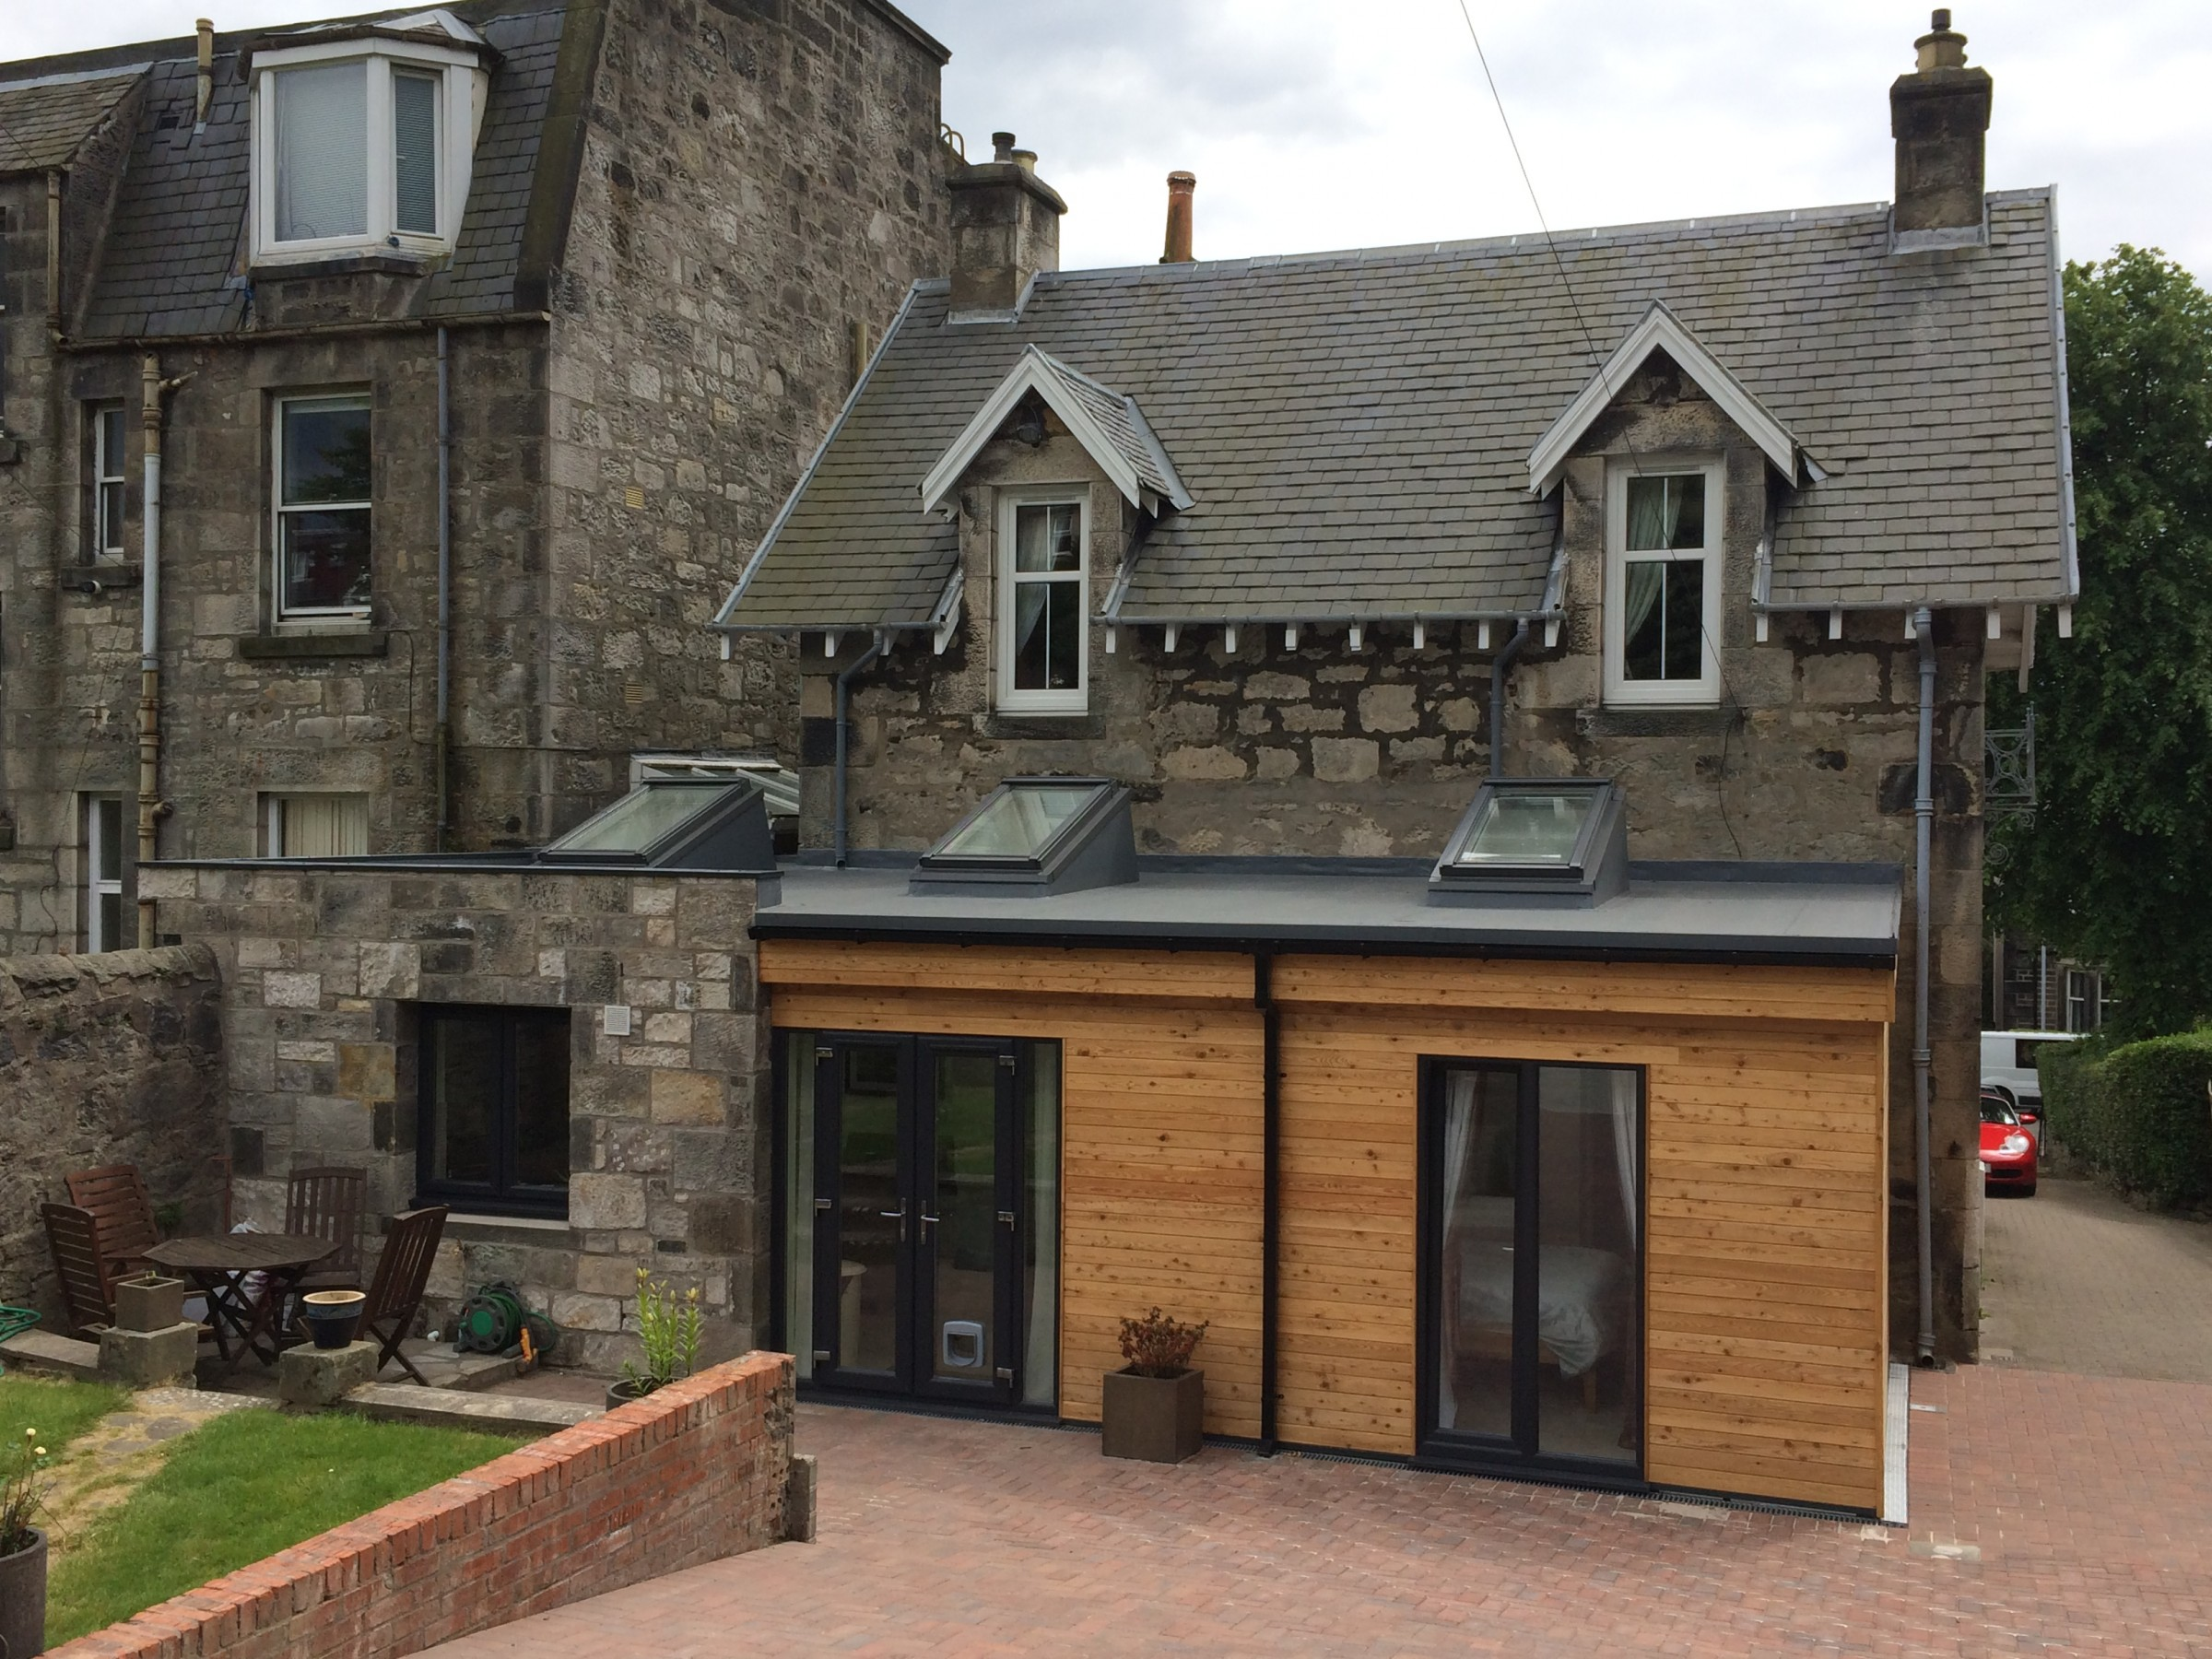 House Designs Scotland House Extensions Planning Permission Scotland Home